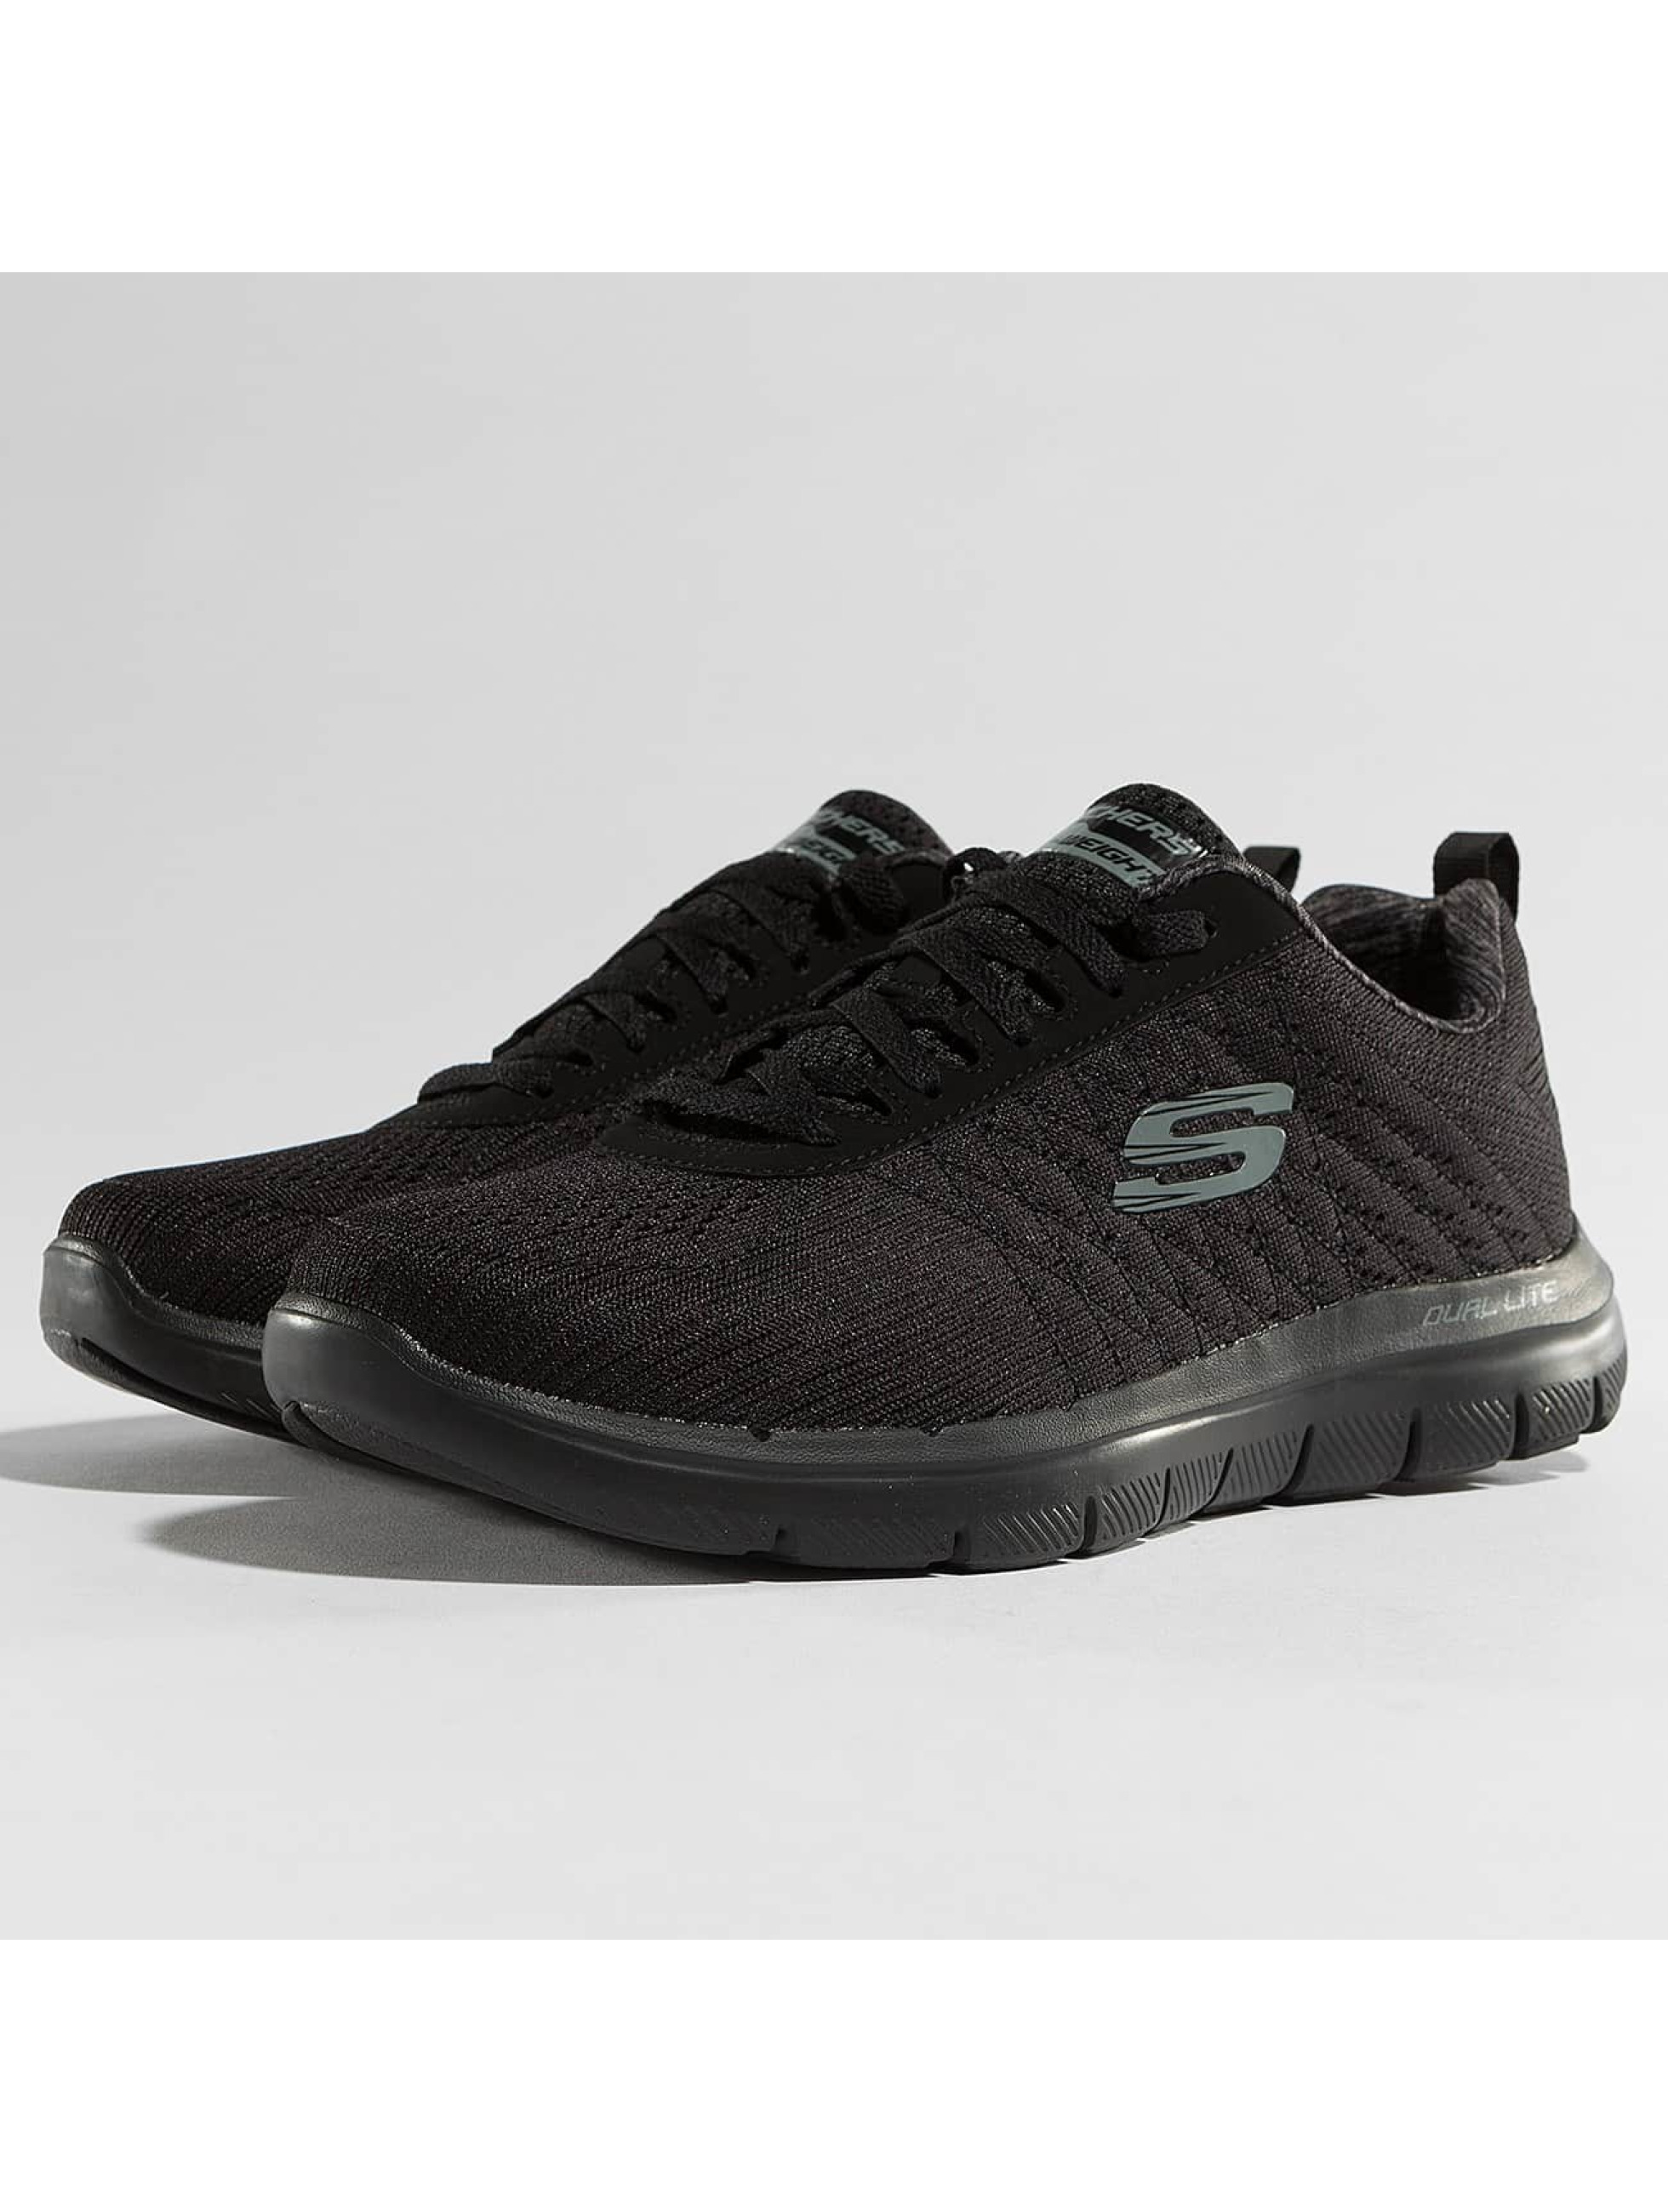 Skechers Sneaker The Happs Flex Advantage 2.0 schwarz